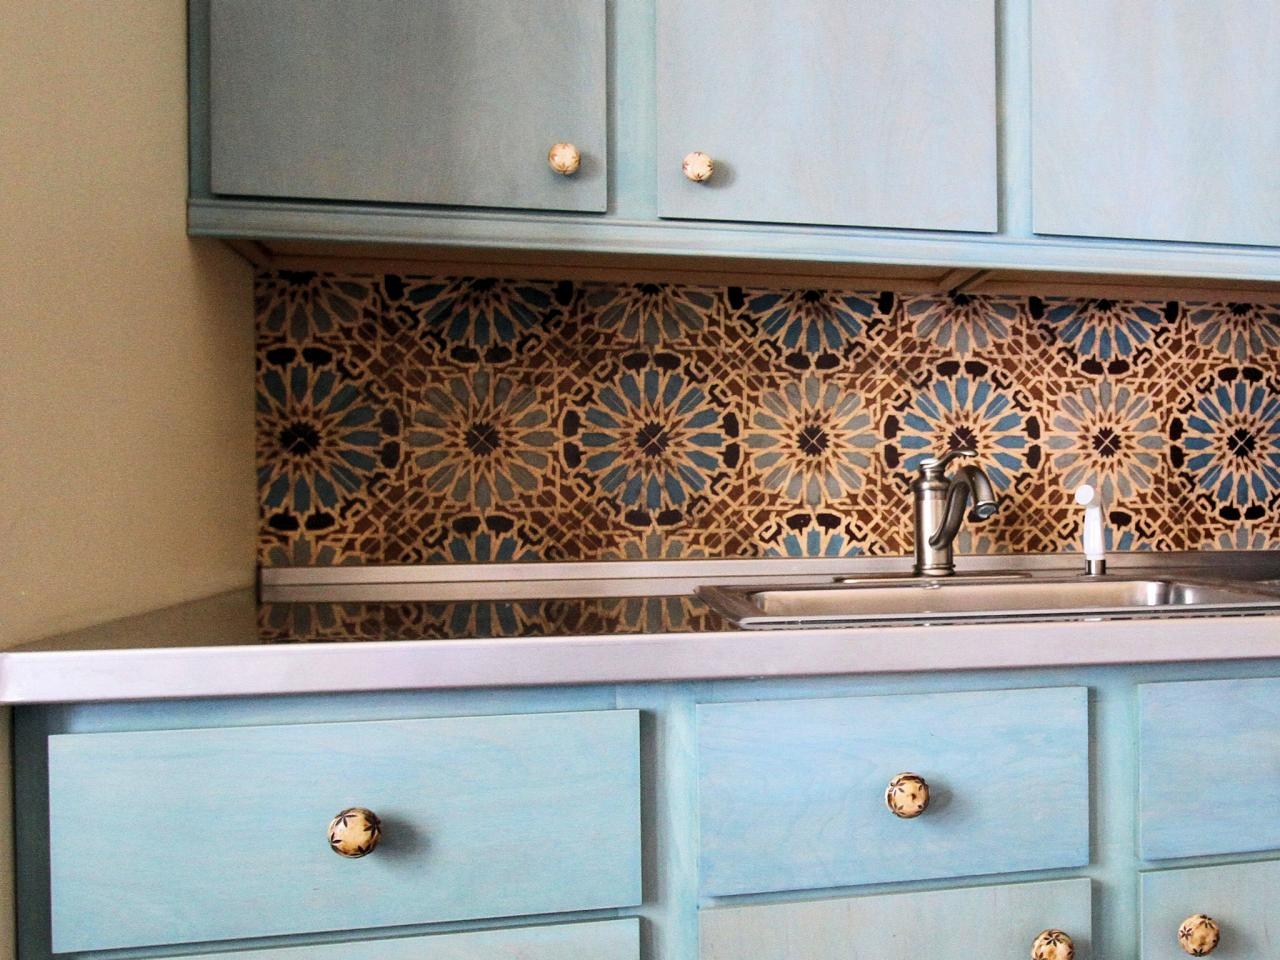 Kitchen tile backsplash ideas pictures tips from hgtv hgtv kitchen tile backsplash ideas dailygadgetfo Choice Image